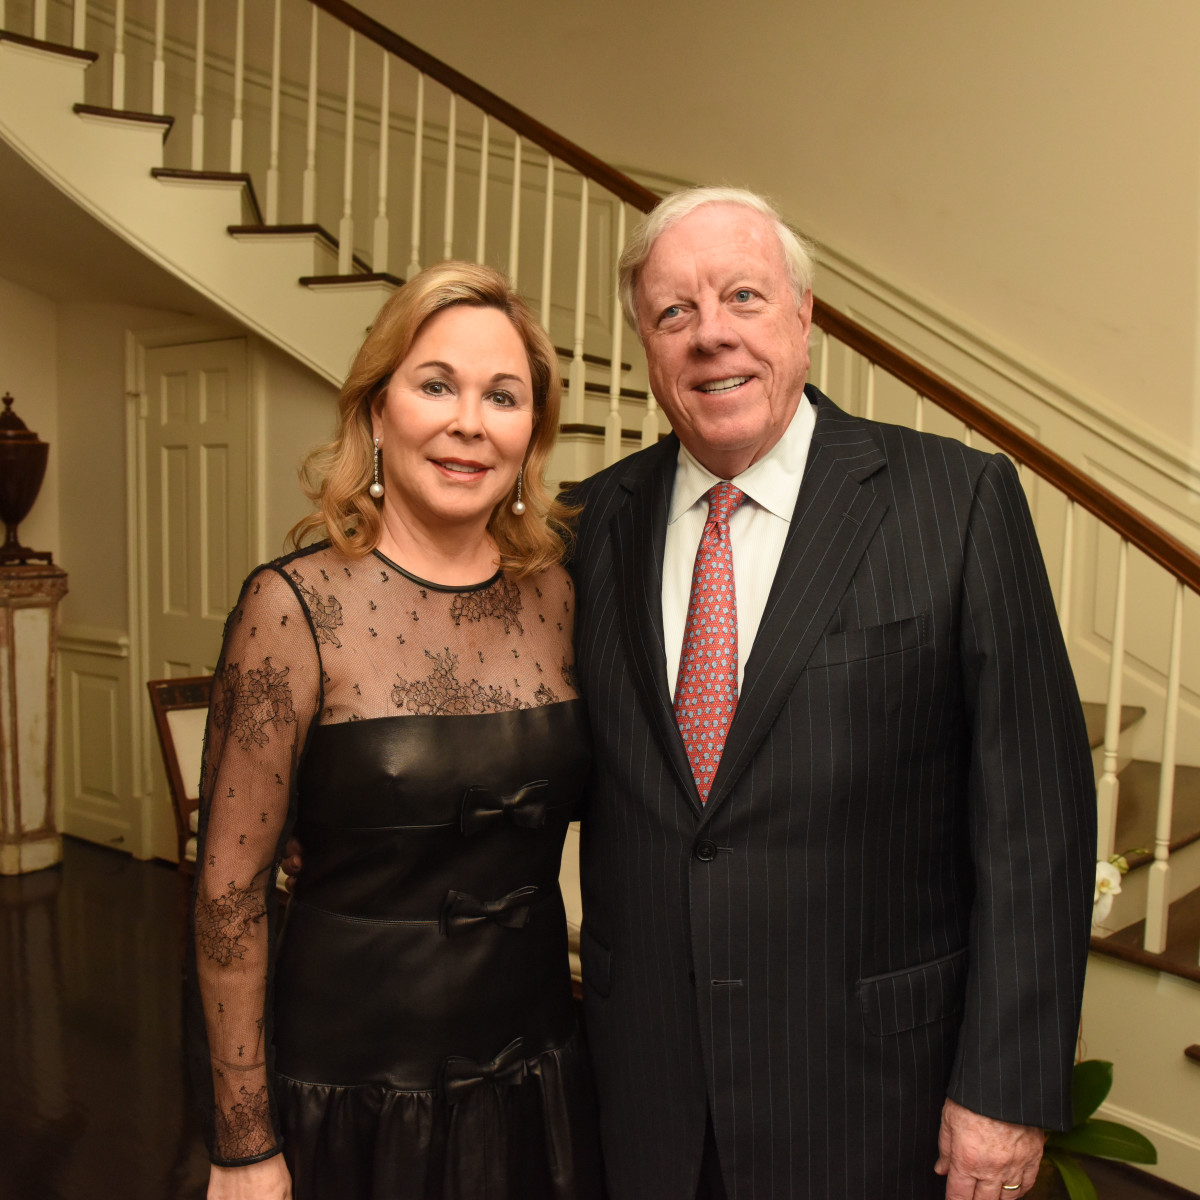 News, Shelby, Departures/Chopard dinner, Oct. 2015, Nancy Kinder, Rich Kinder